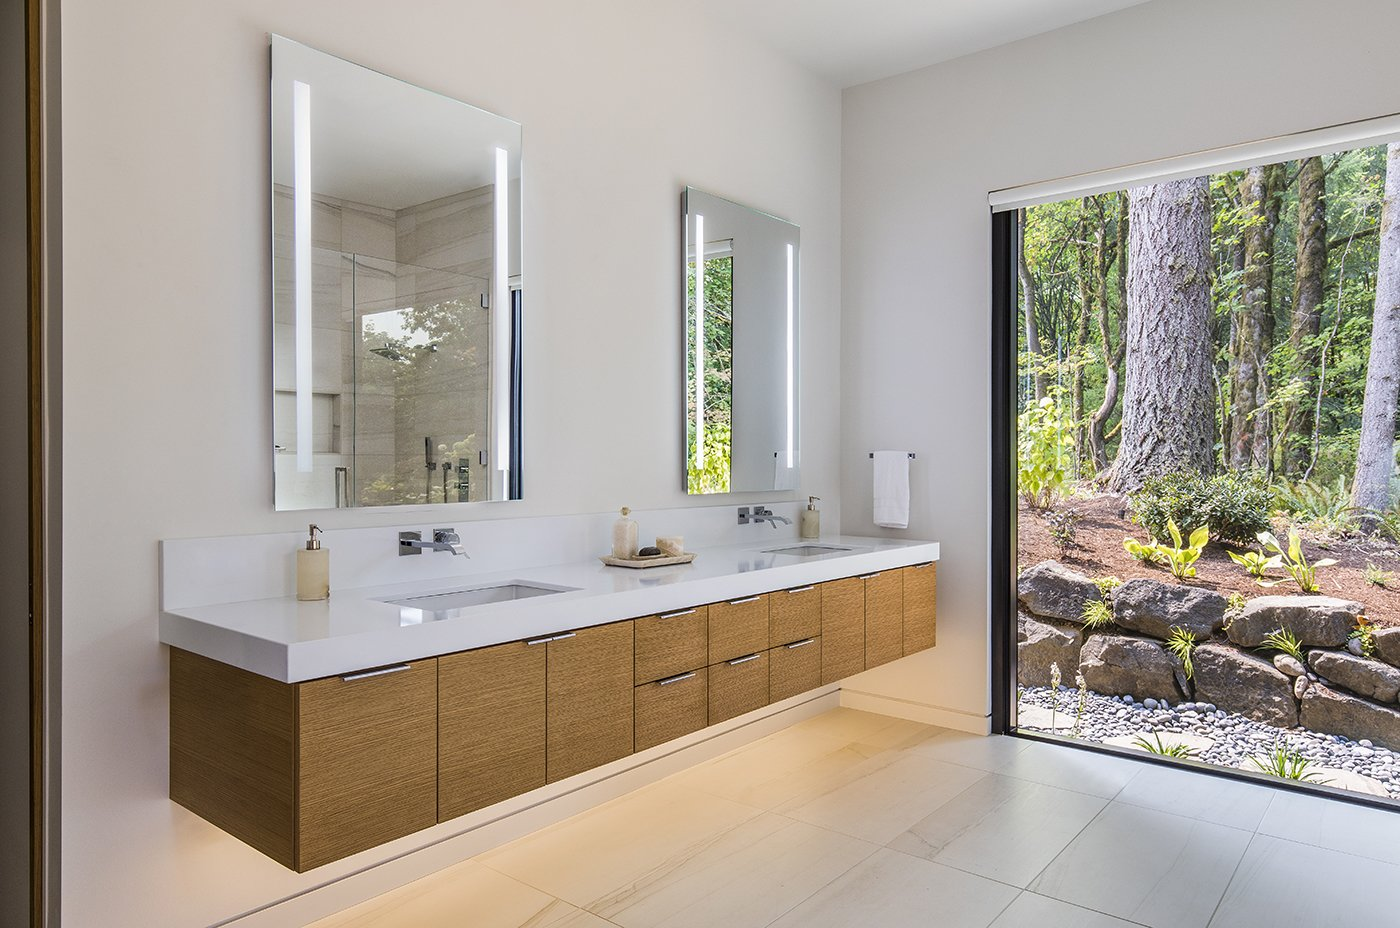 Bath Room, Quartzite Counter, Porcelain Tile Floor, Wall Lighting, Undermount Sink, and Stone Slab Wall  Wildwood by Giulietti / Schouten AIA Architects